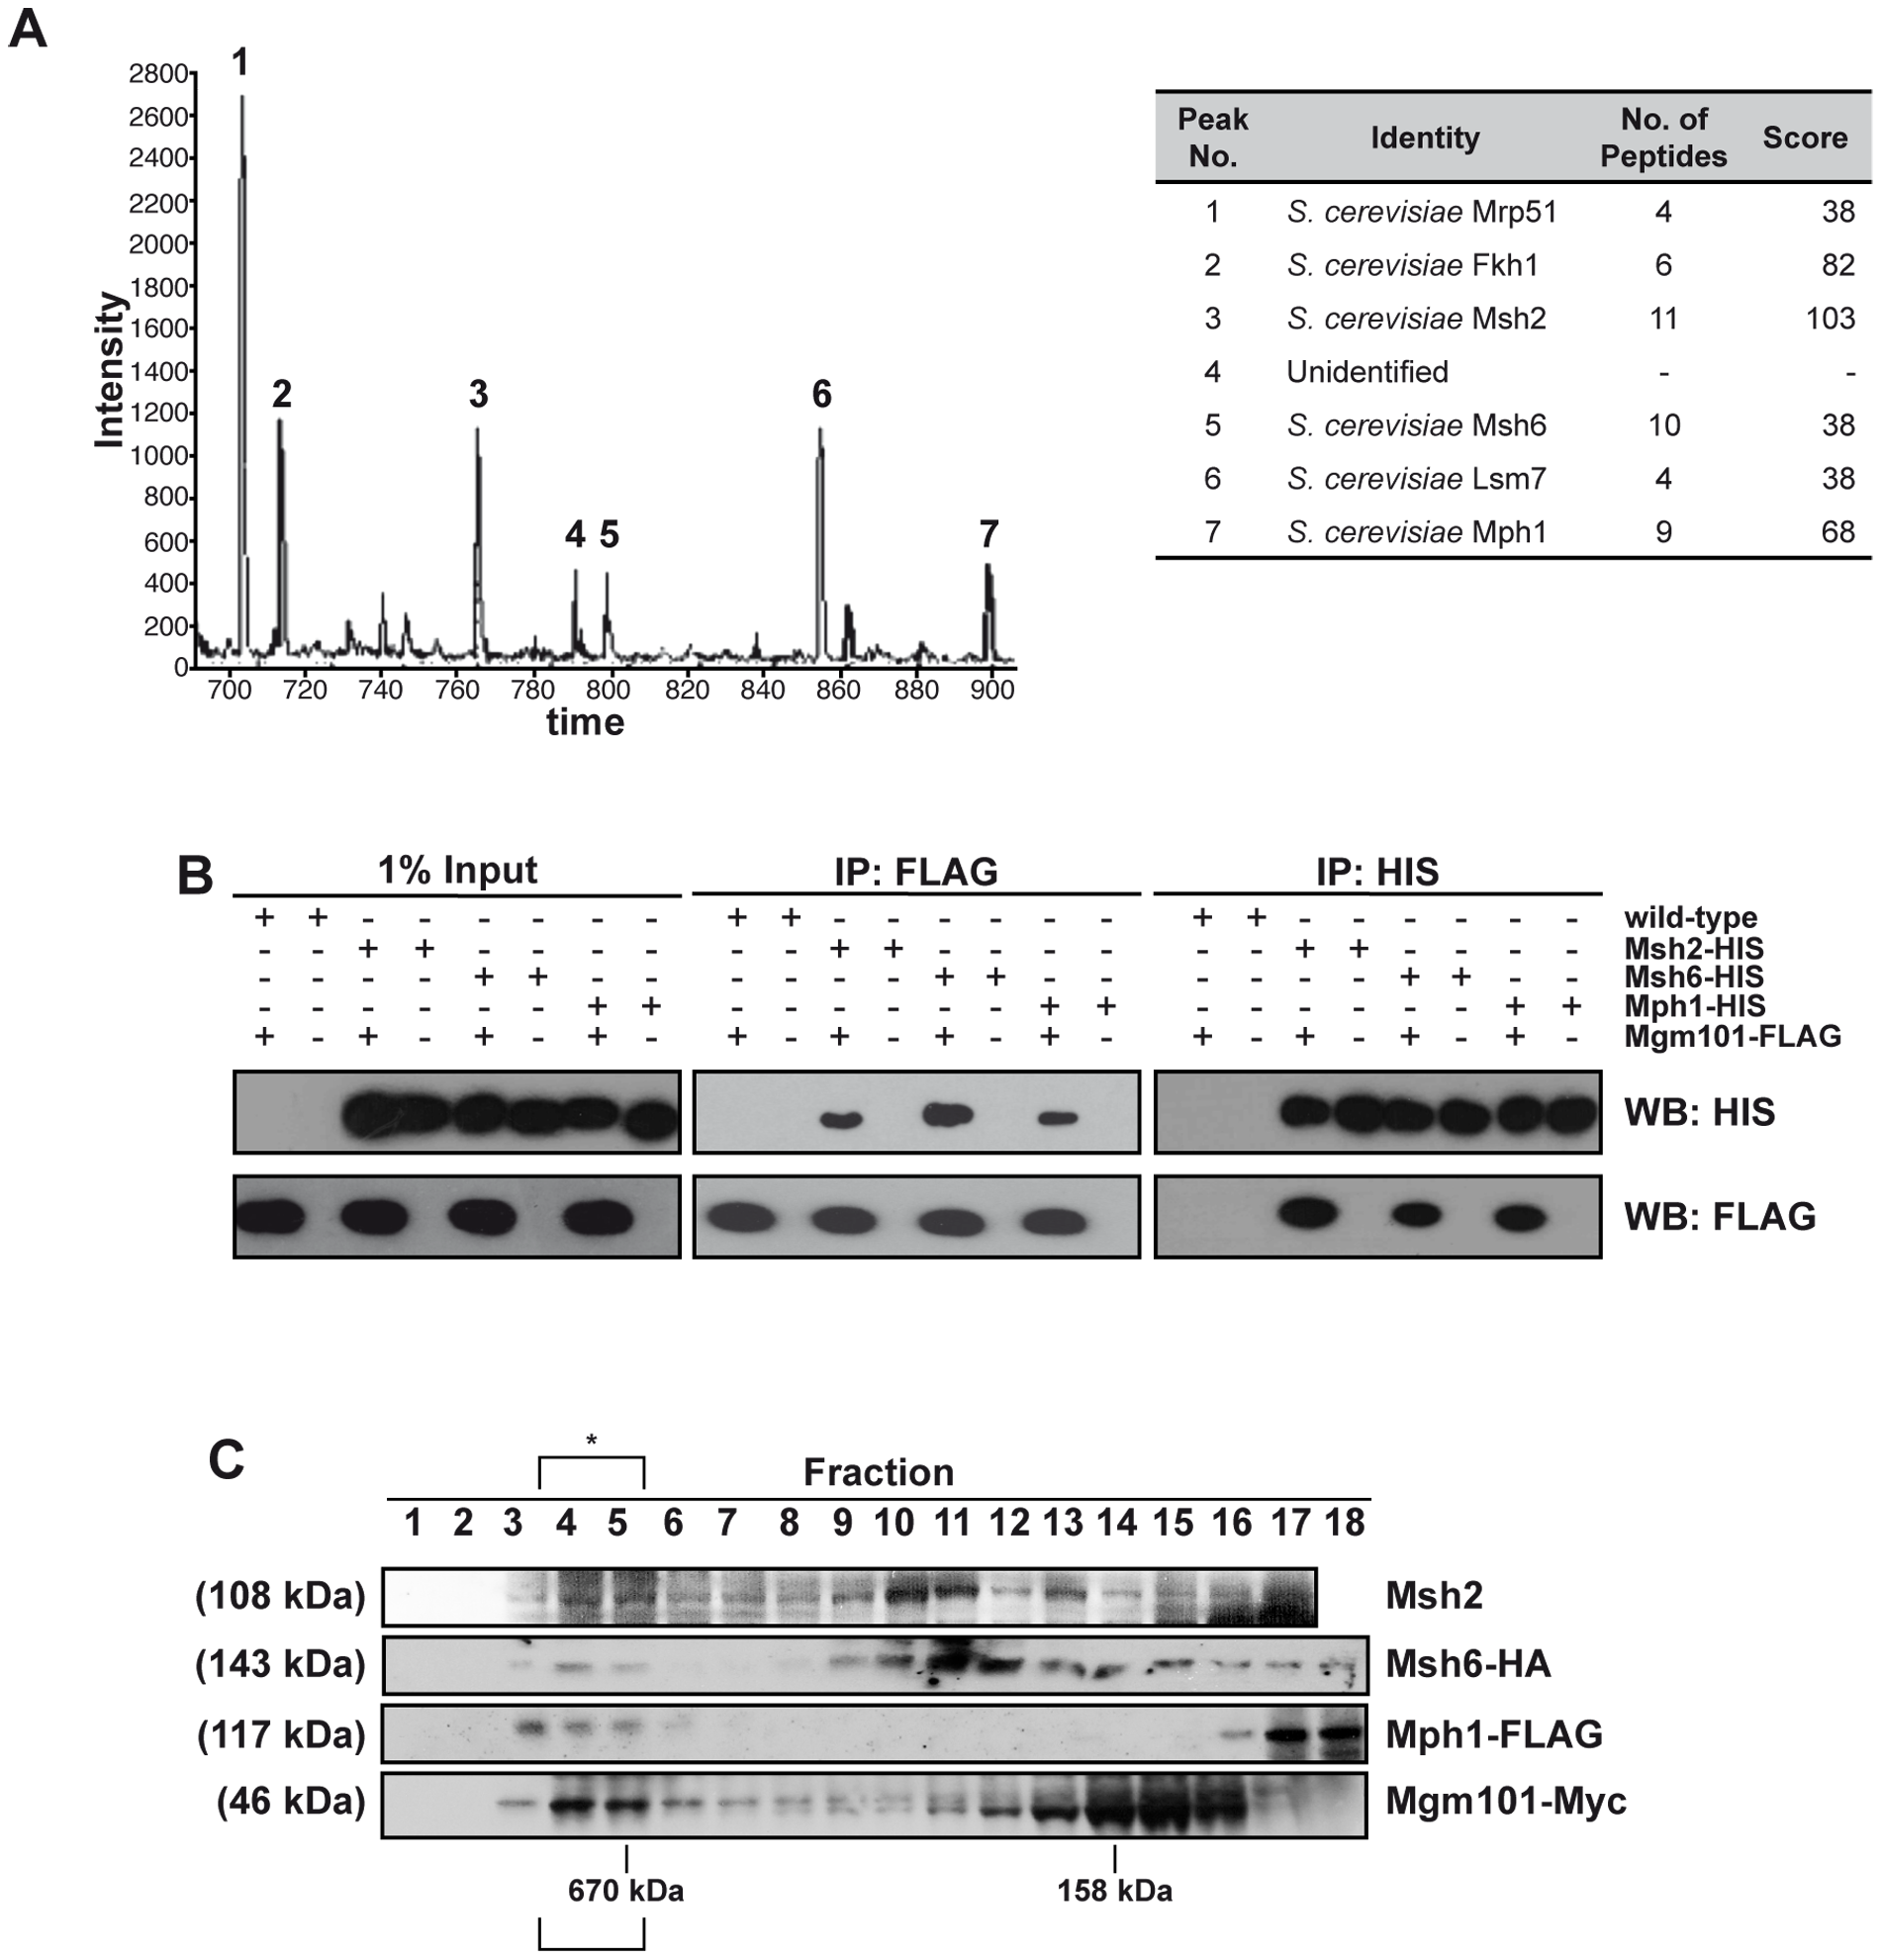 Mgm101 interacts with Mph1 and MutSα.